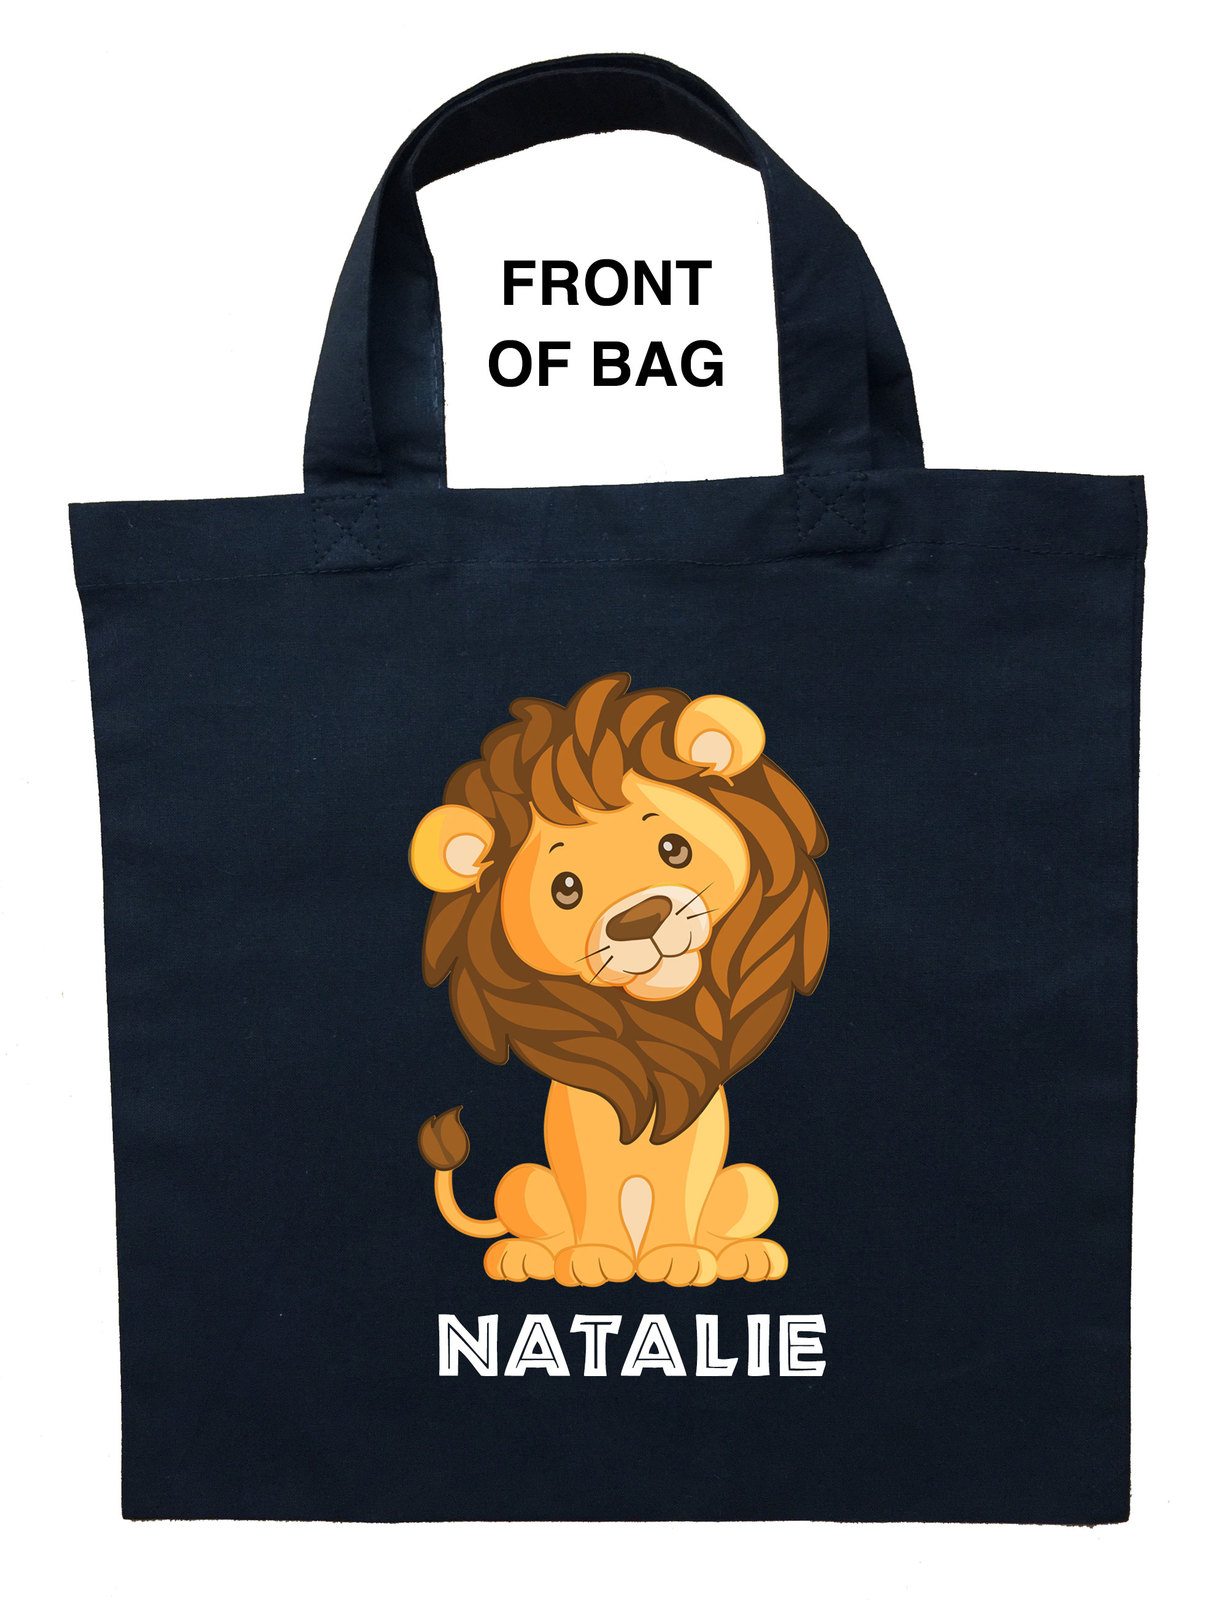 Lion Trick or Treat Bag, Baby Lion Halloween Bag, Lion Loot Bag, Lion Candy Bag